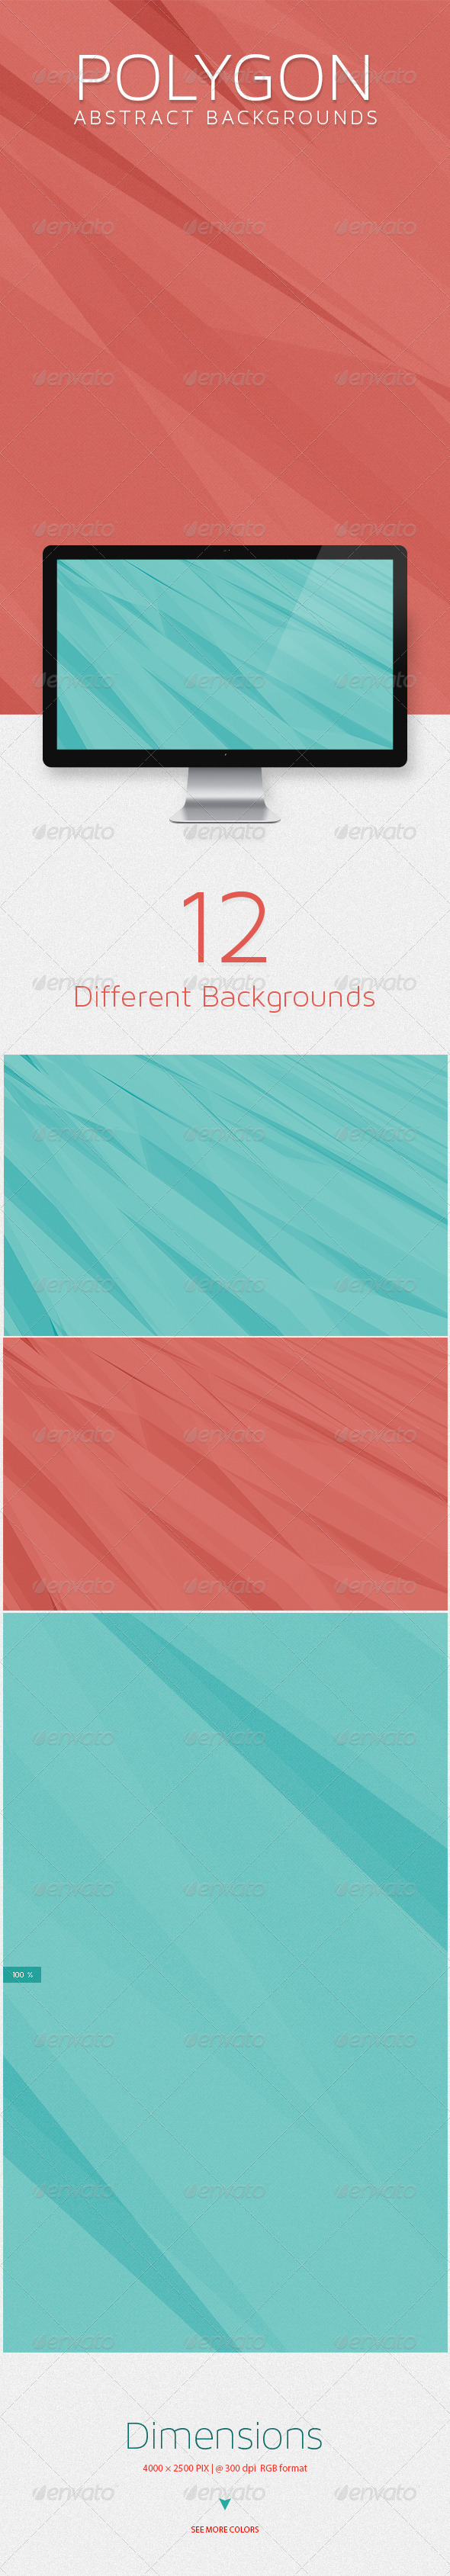 GraphicRiver Polygon Abstract Backgrounds 8683274